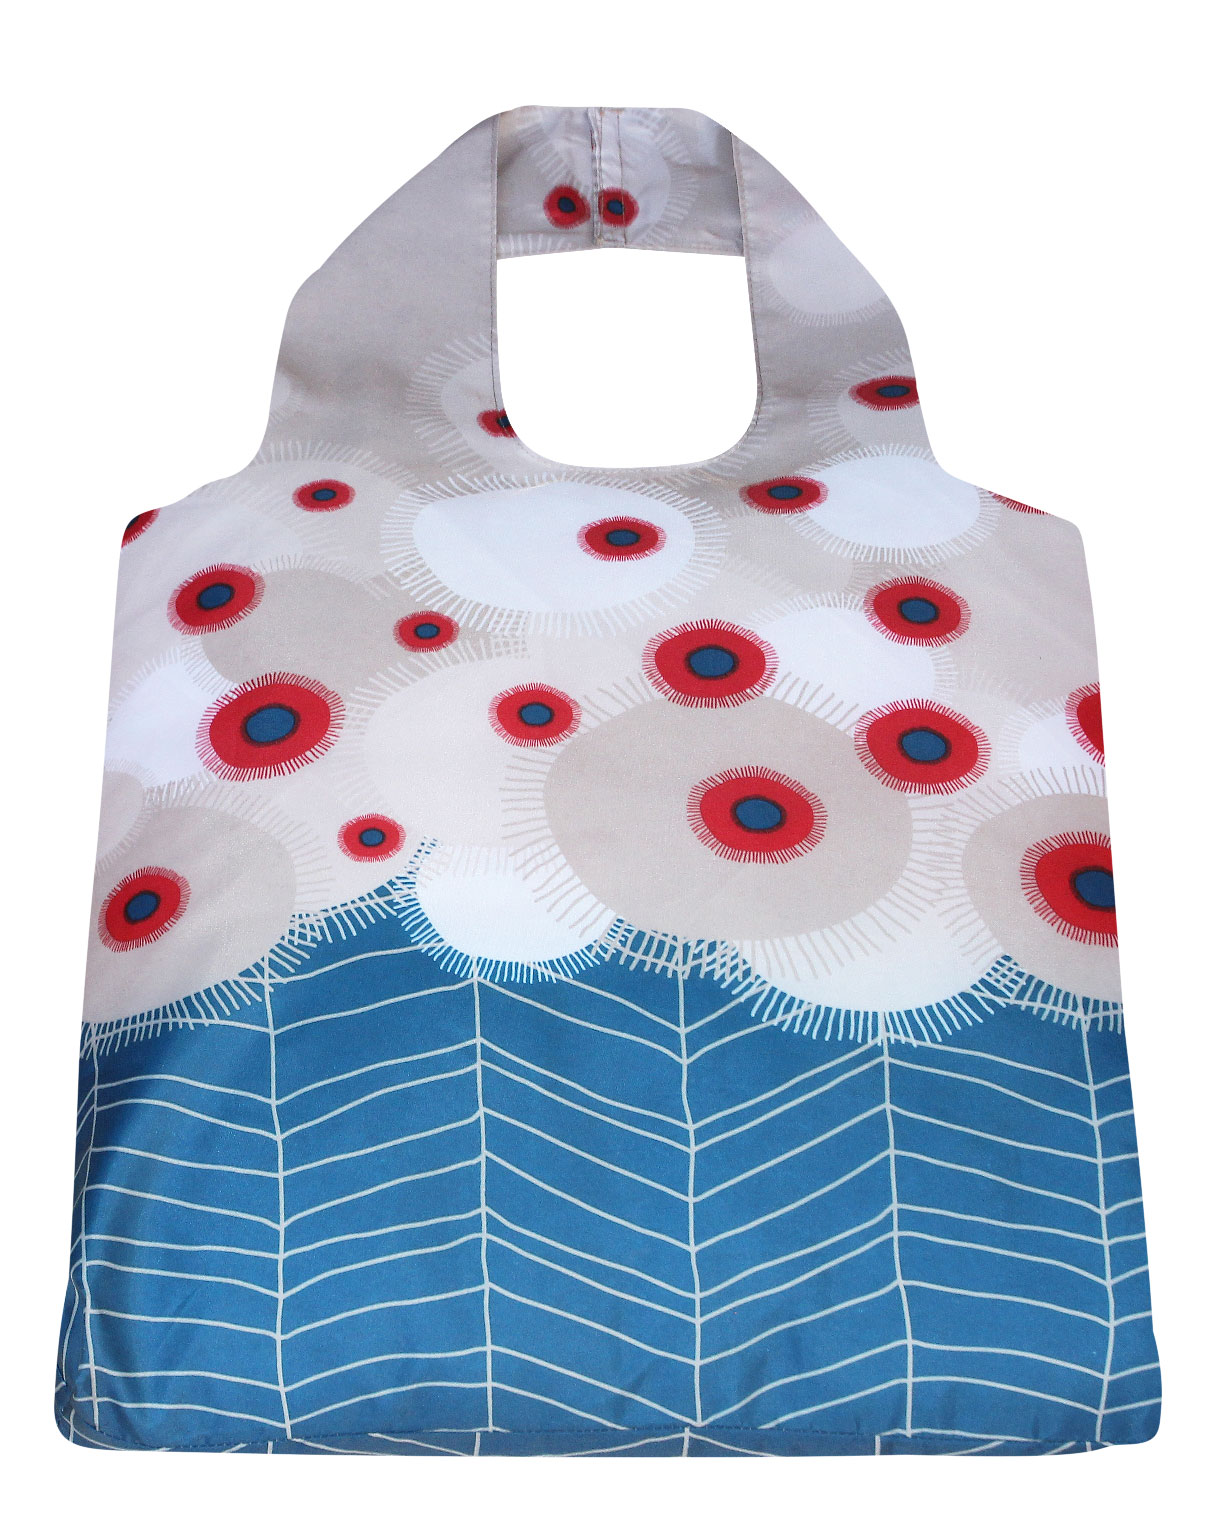 SAKitToMe ~ Poppies Design ~ Compact Bag by Envirotrend